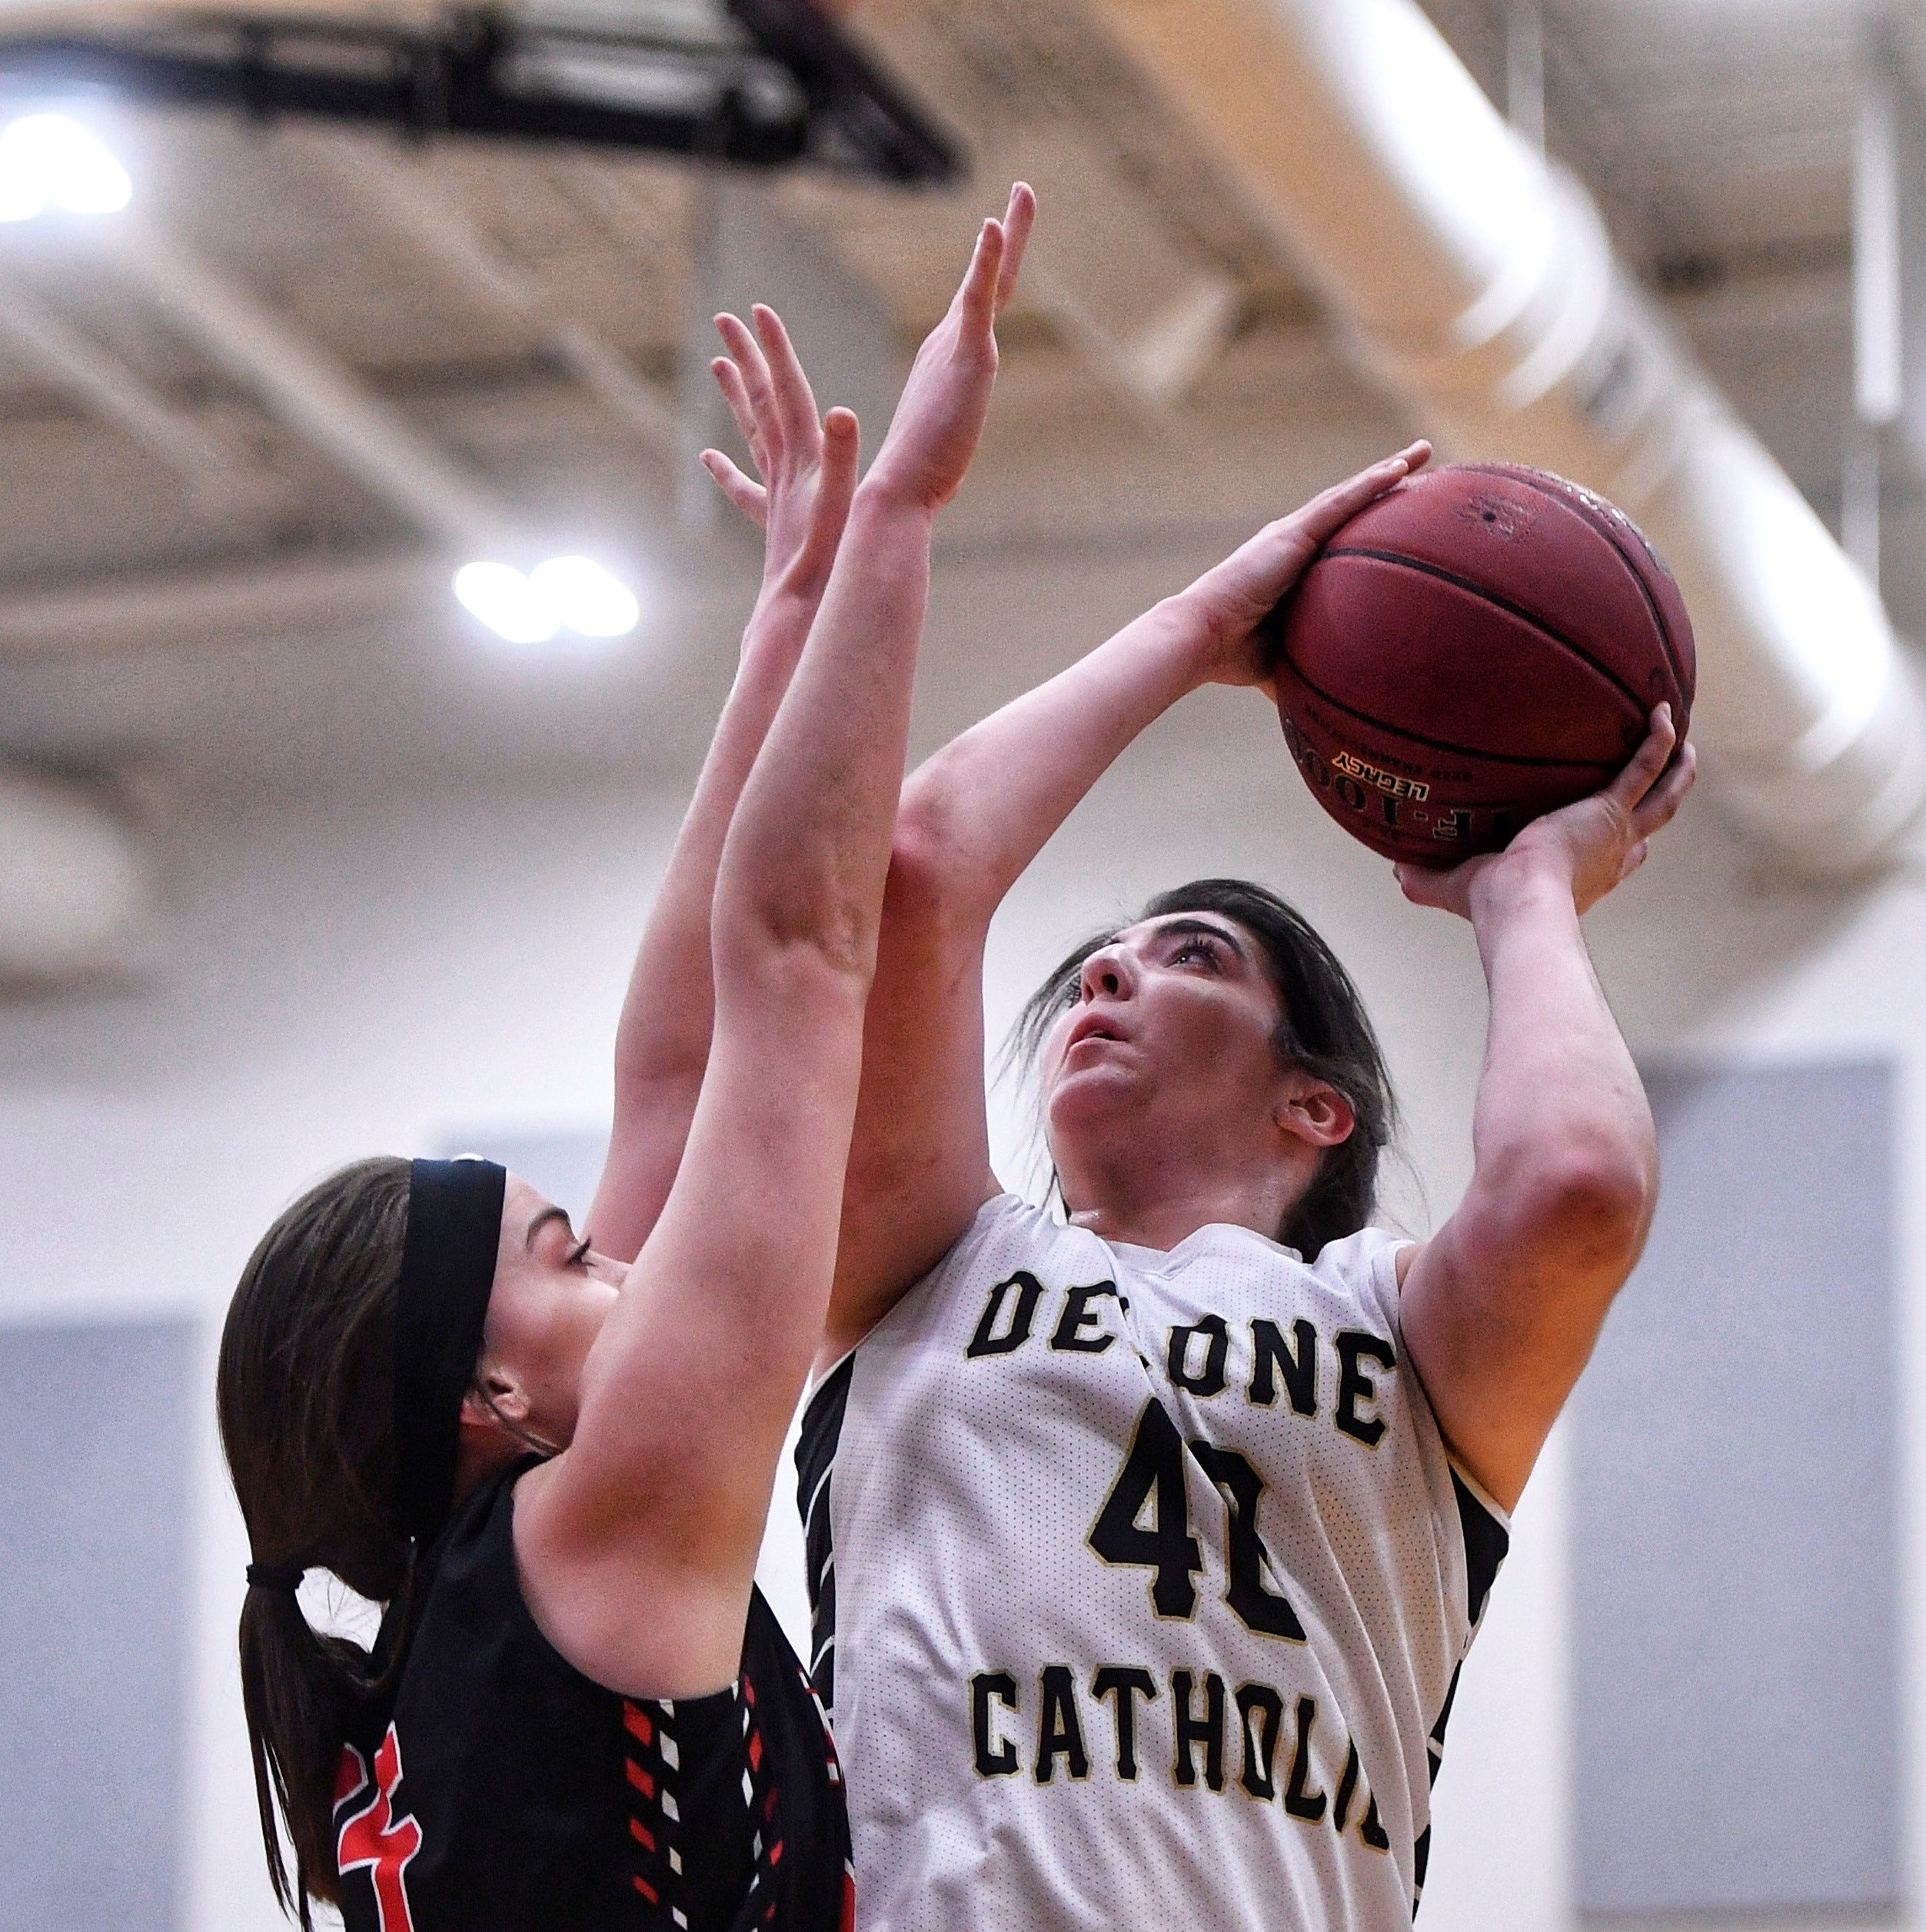 Delone Catholic girls' basketball team earns berth in PIAA Class 3-A state title game